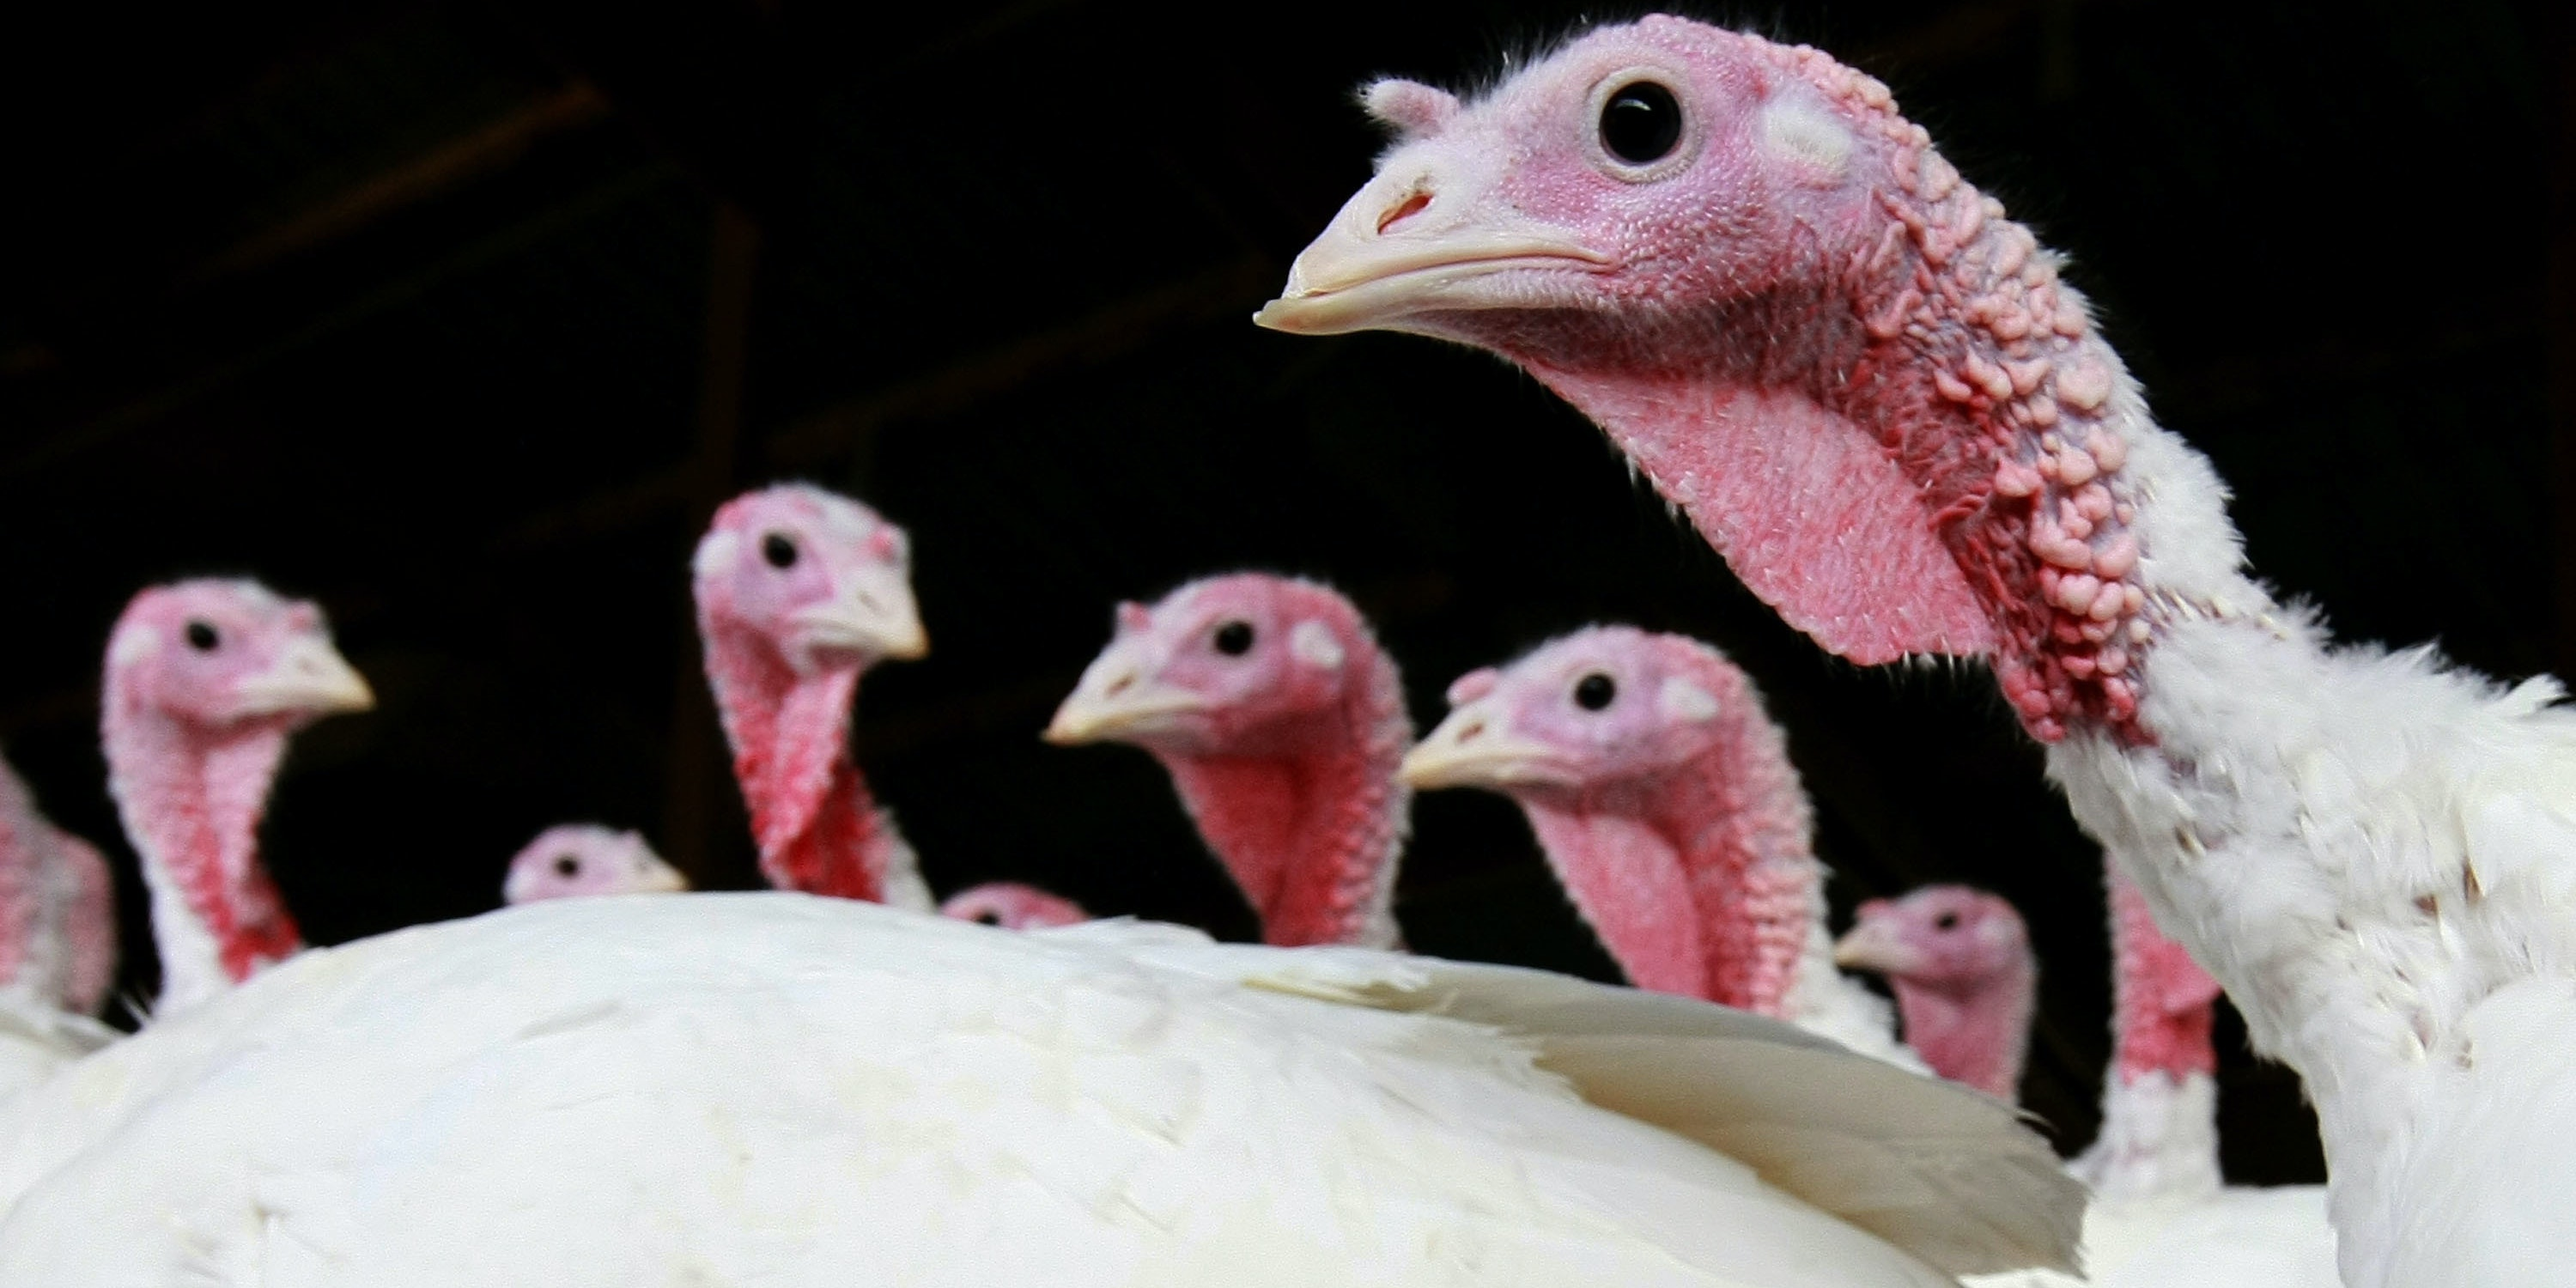 SONOMA, CA - NOVEMBER 24:  With less than one week before Thanksgiving, turkeys stand in a barn at the Willie Bird Turkey Farm November 24, 2008 in Sonoma, California. An estimated forty-five million turkeys are cooked and eaten during annual Thanksgiving meals in the United States.  (Photo by Justin Sullivan/Getty Images)